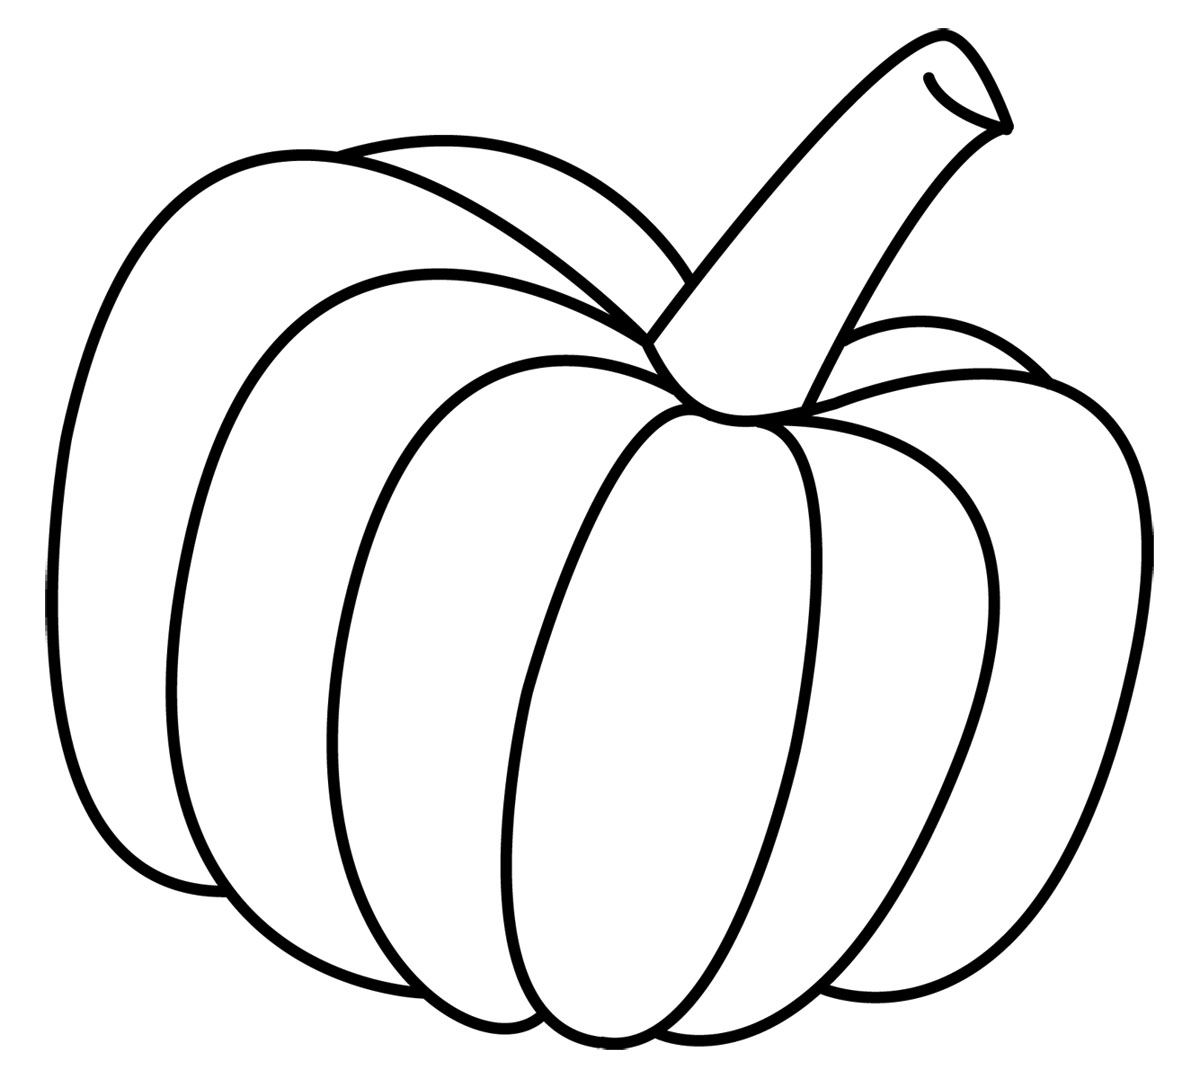 Simple Line Artwork : Simple line art clipart best